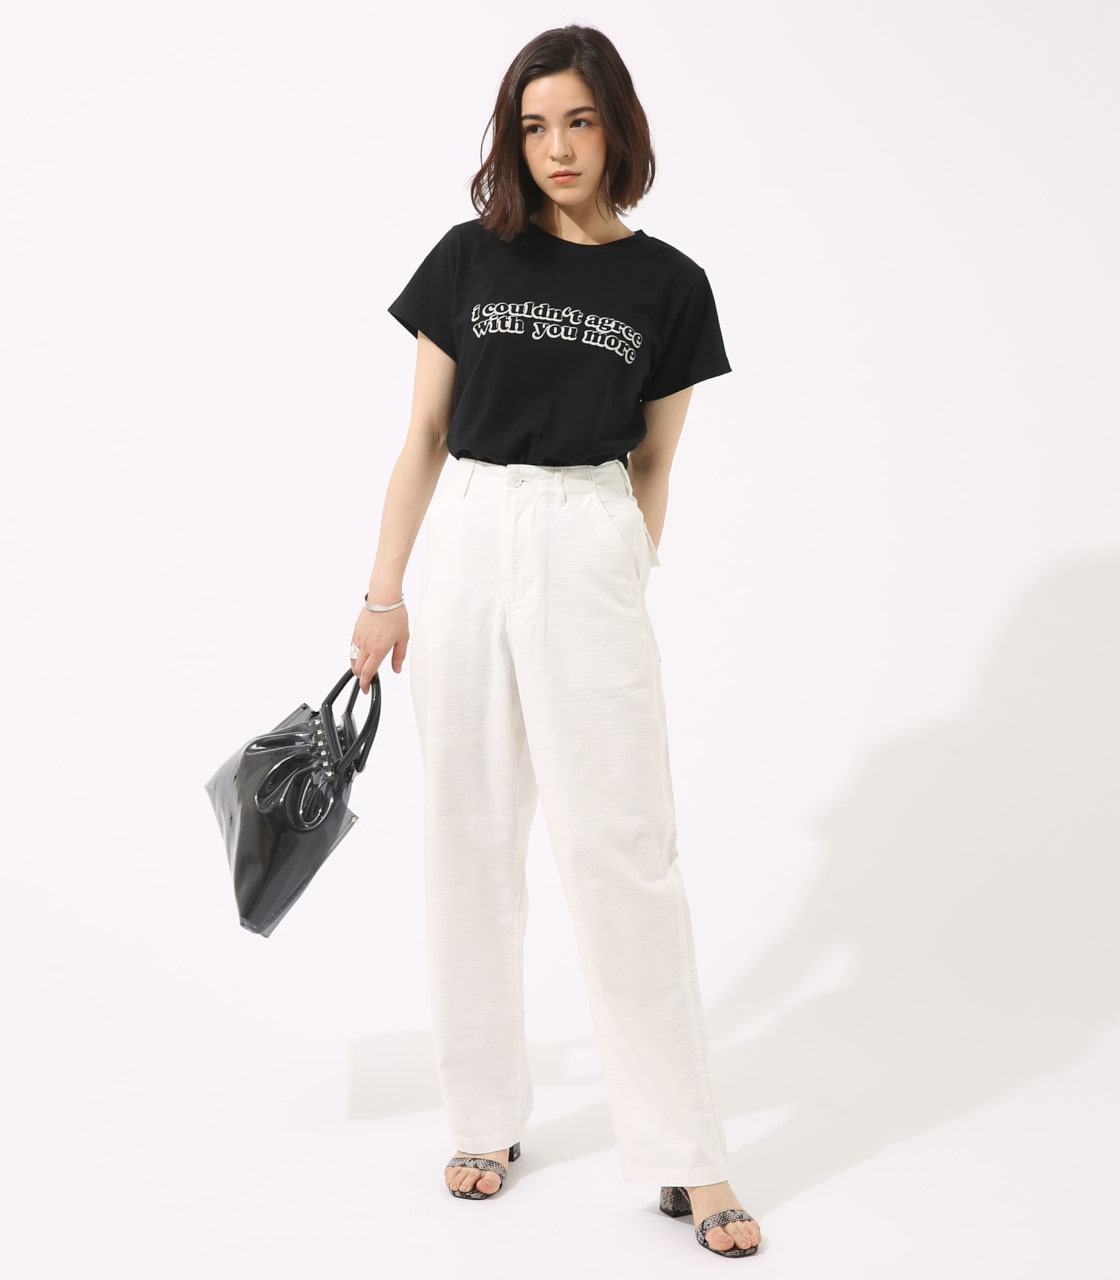 【AZUL BY MOUSSY】With you more TEE 詳細画像 BLK 4